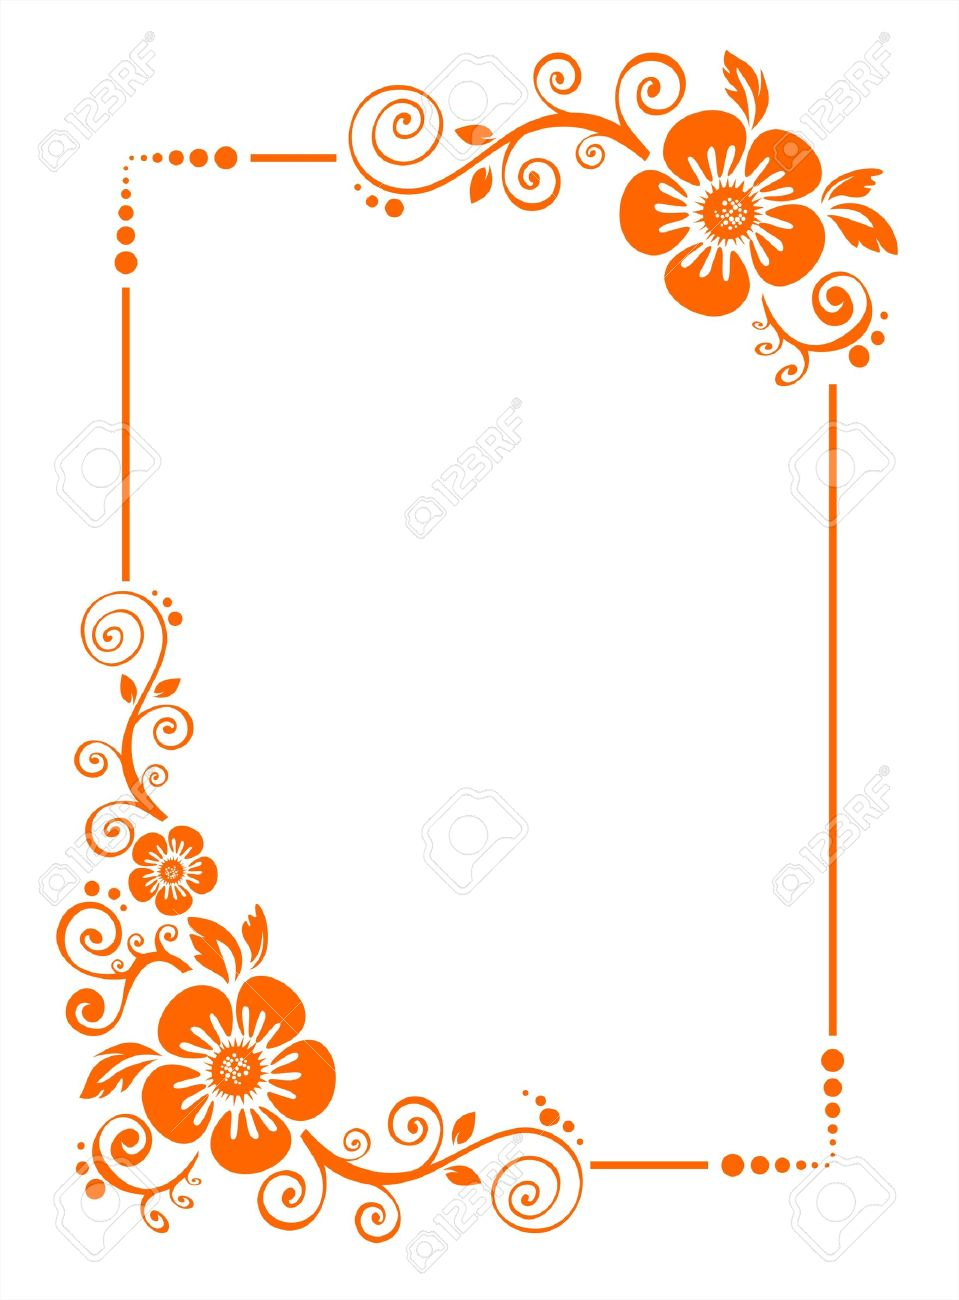 Orange Frame From Decorative Flowers On A White Background. Royalty ...